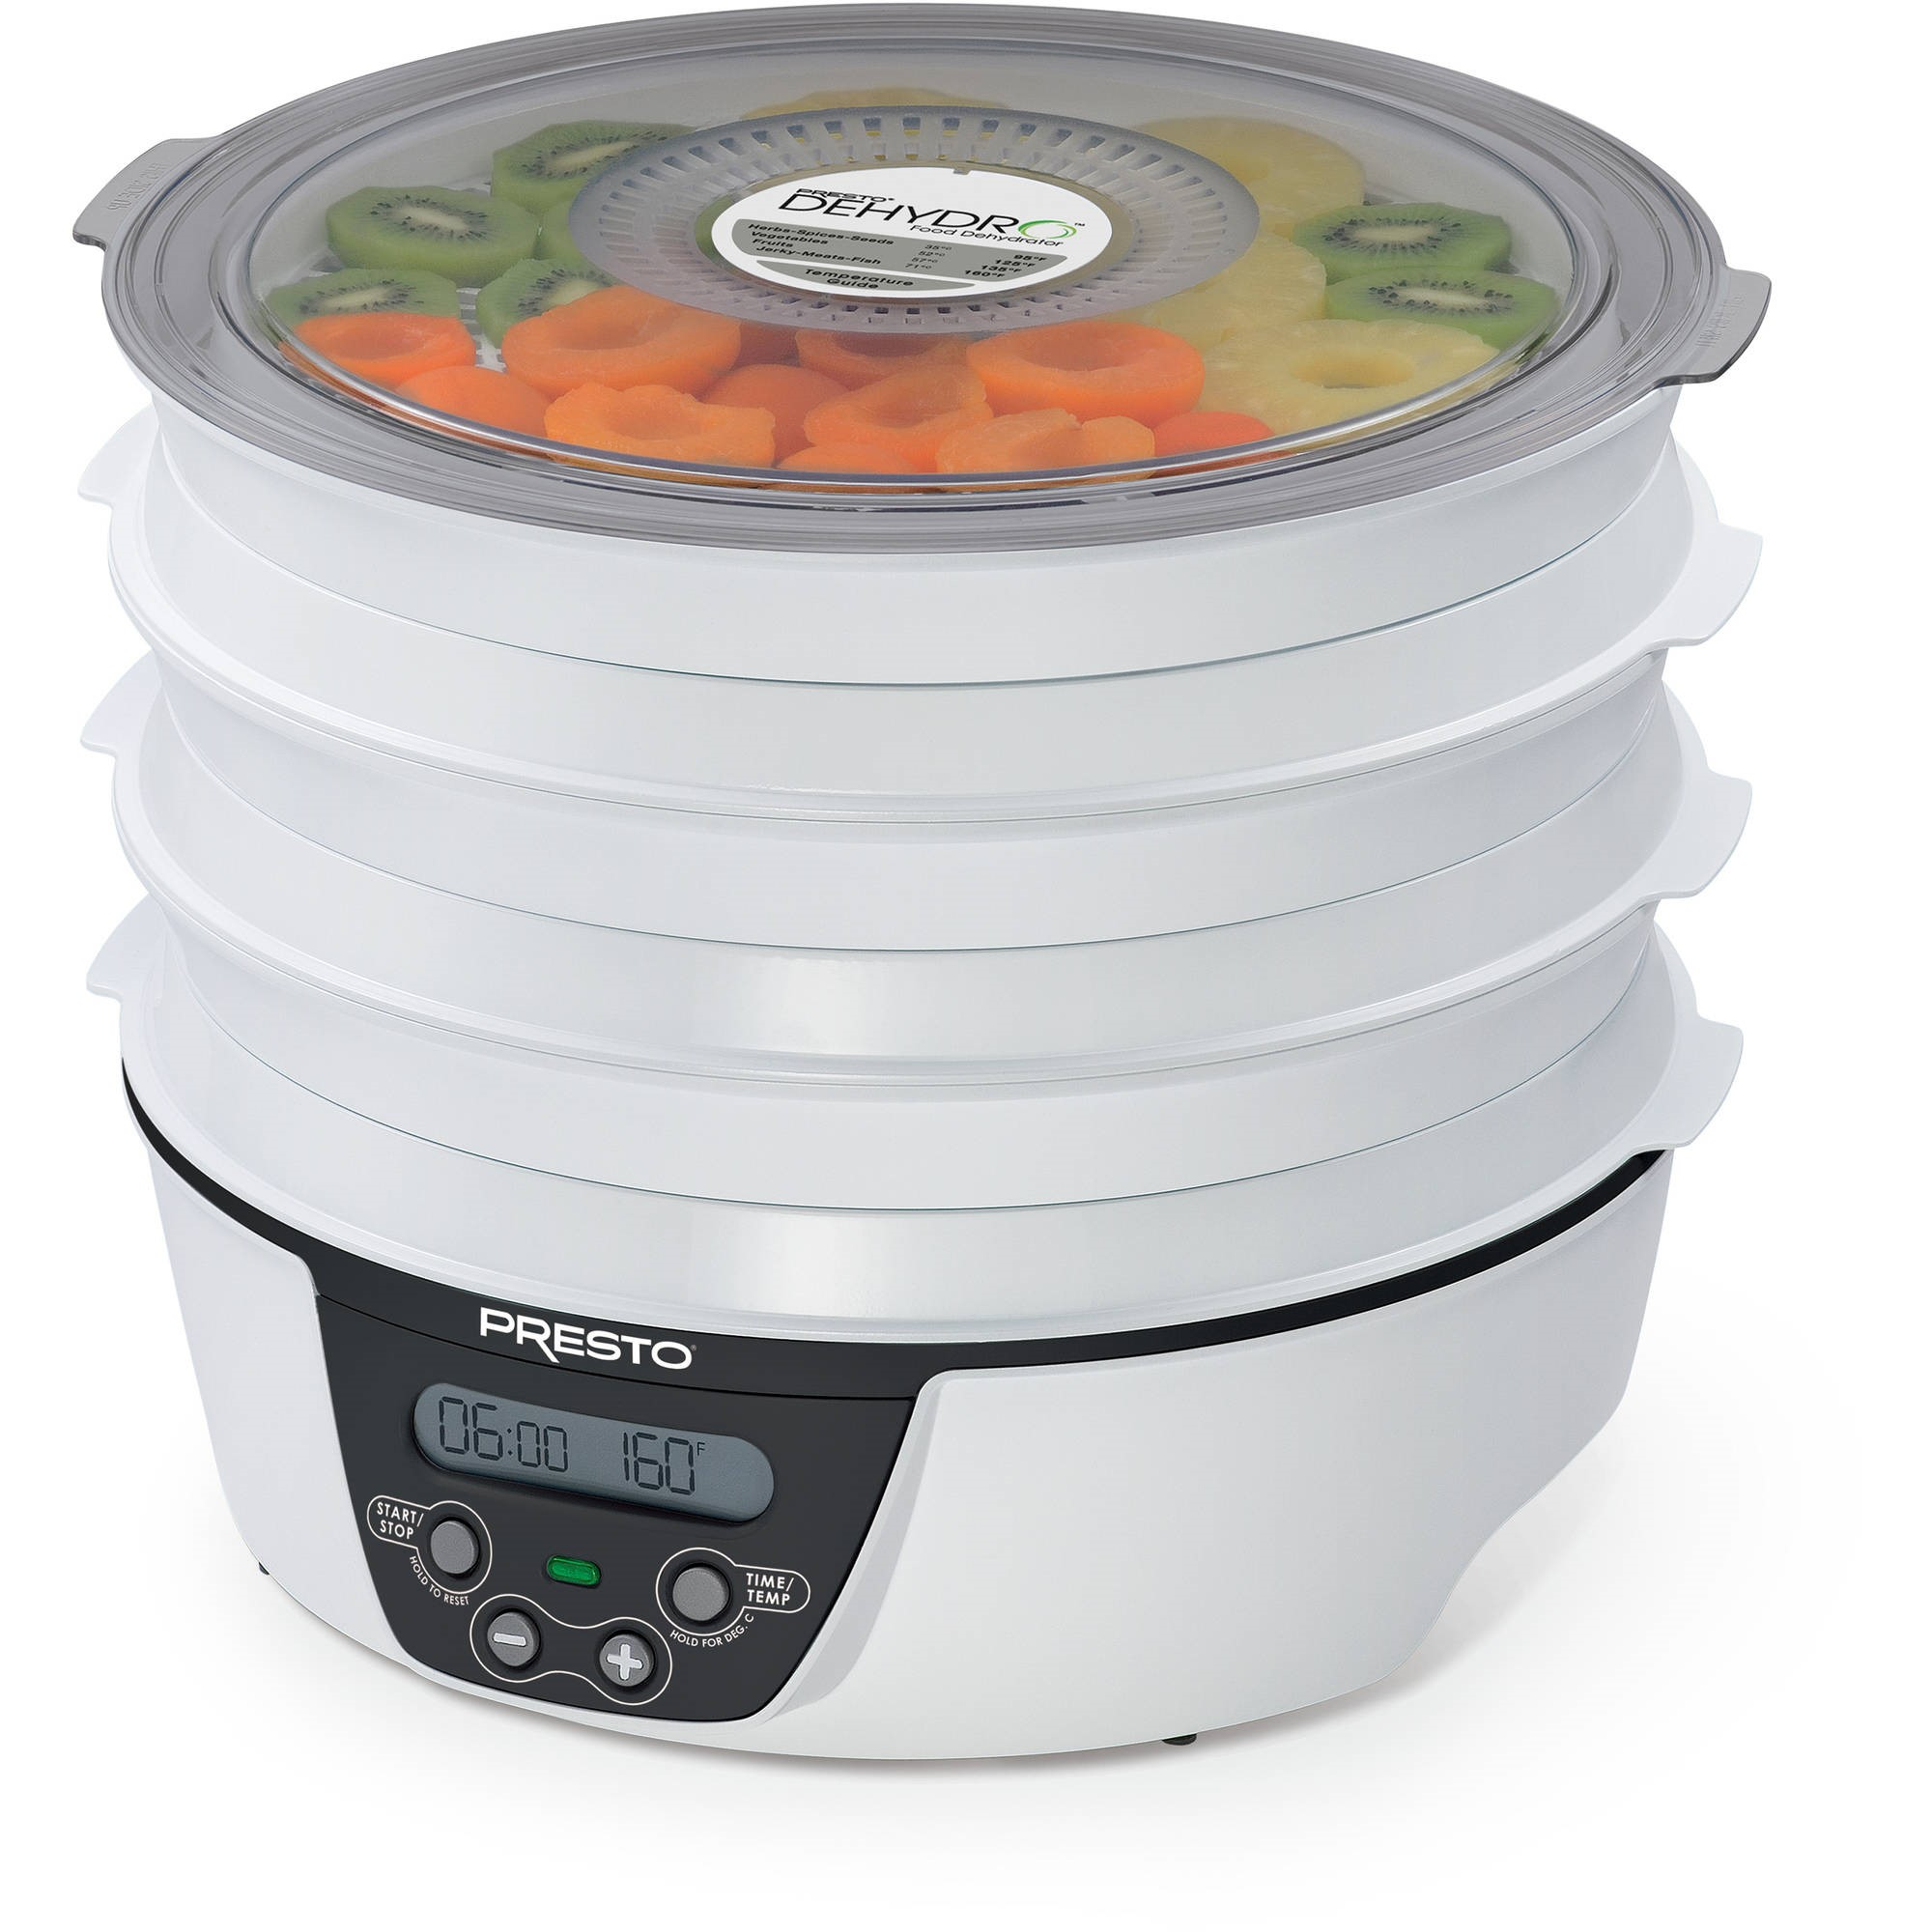 Presto Dehydro Digital Electric Food Dehydrator 06303